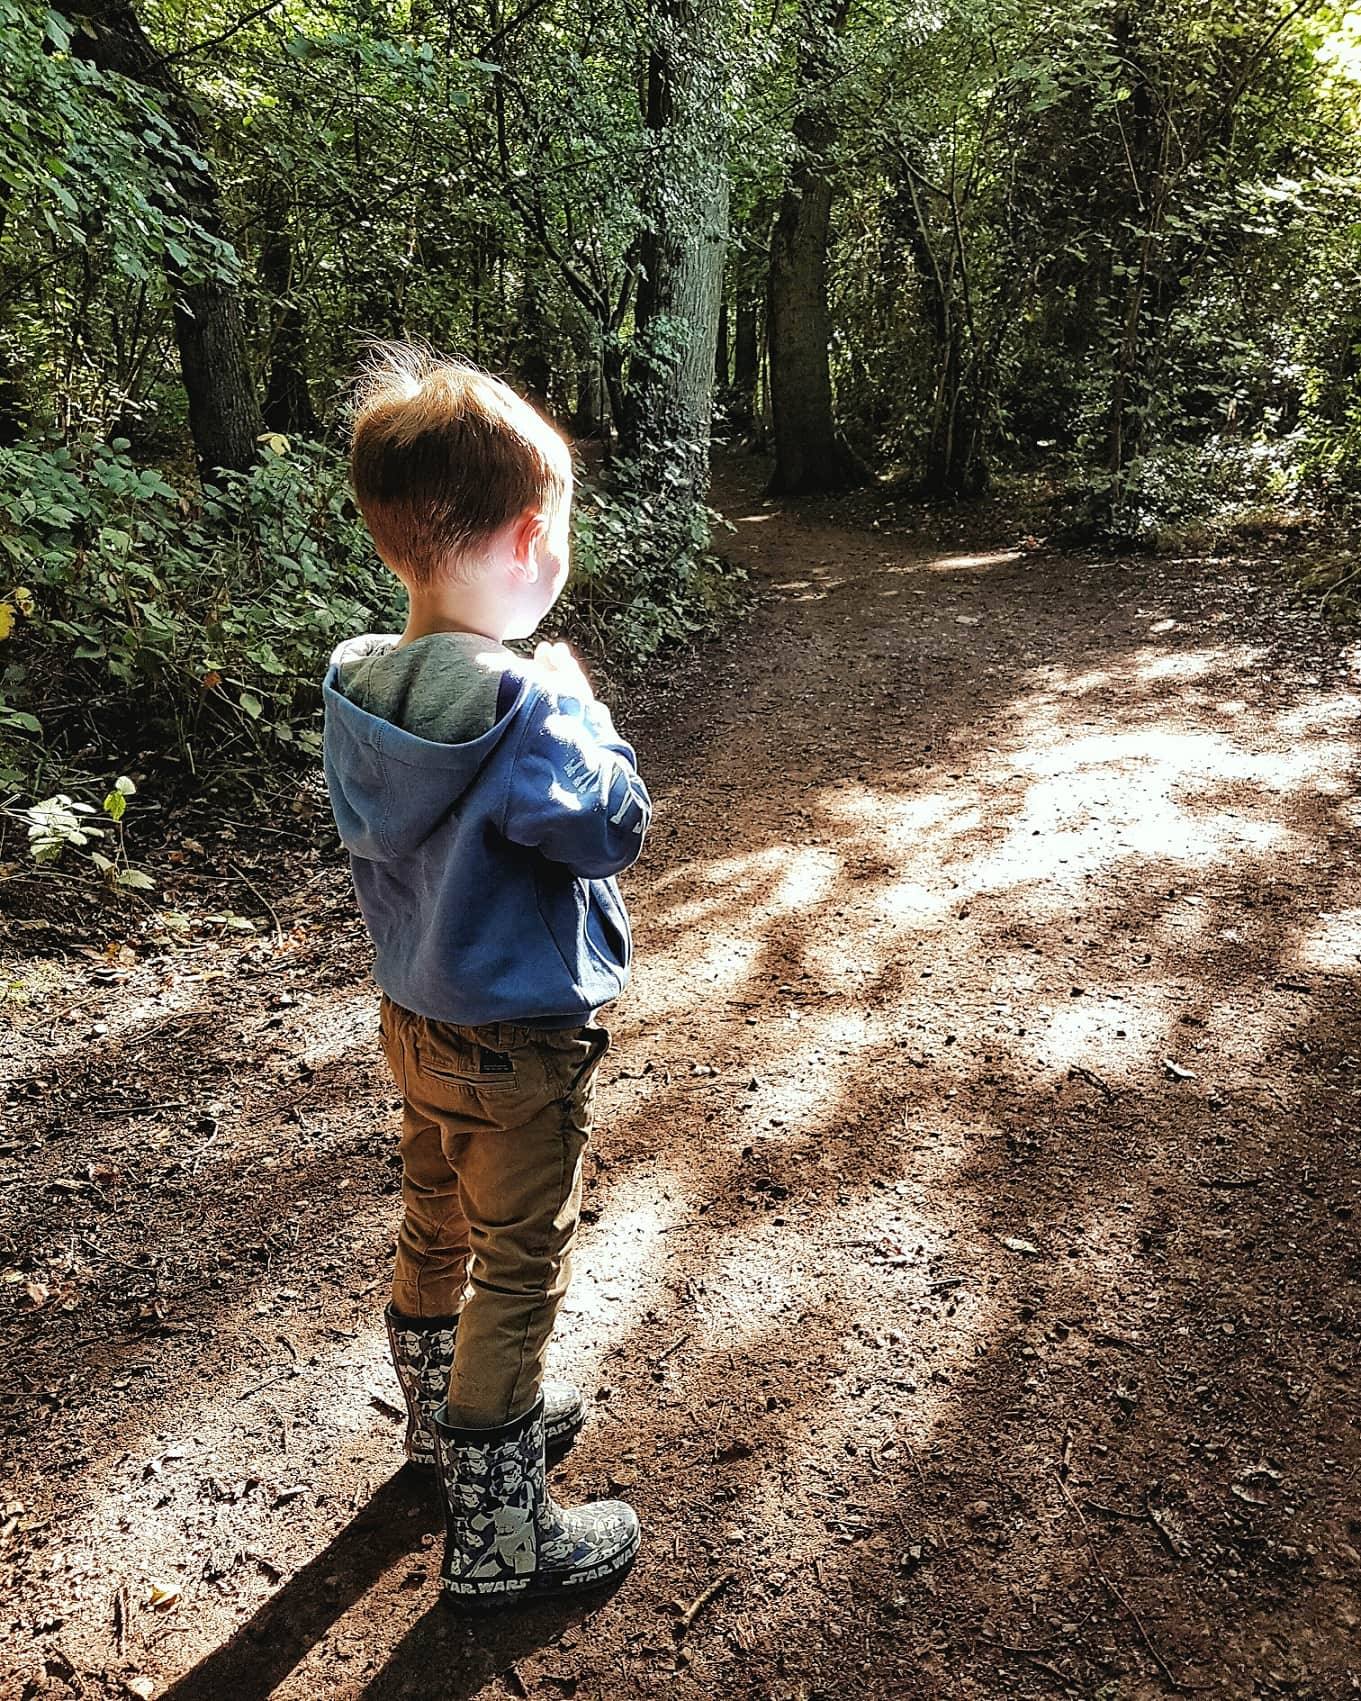 Boy in the sunshine in a wood by Somoeone's Mum